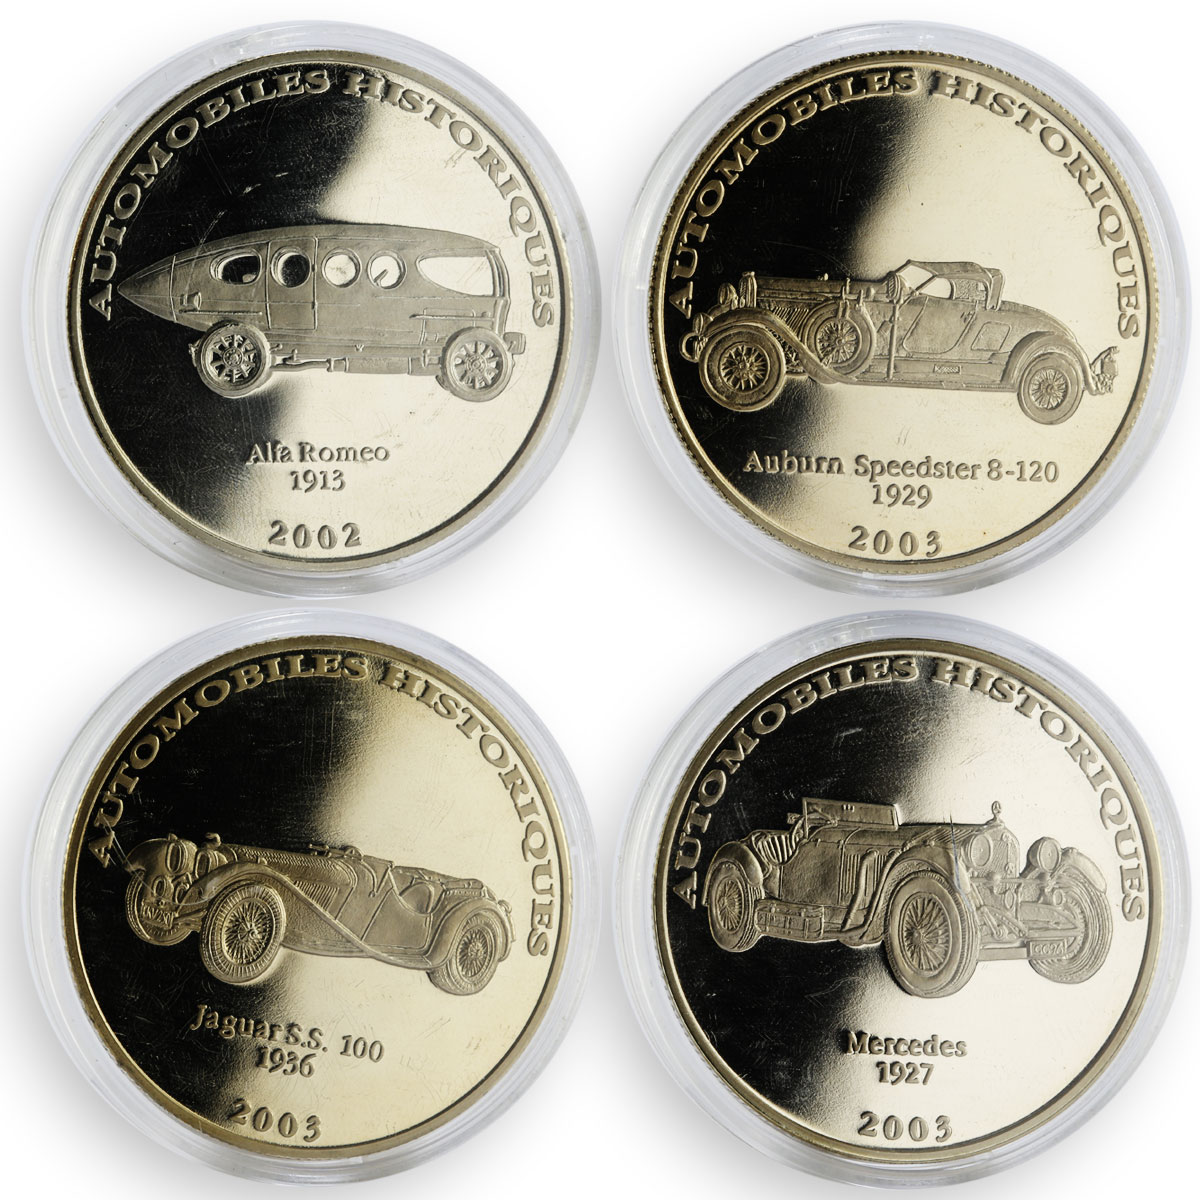 Congo 10 francs set of 24 coins Cars Automobiles Collection 2002